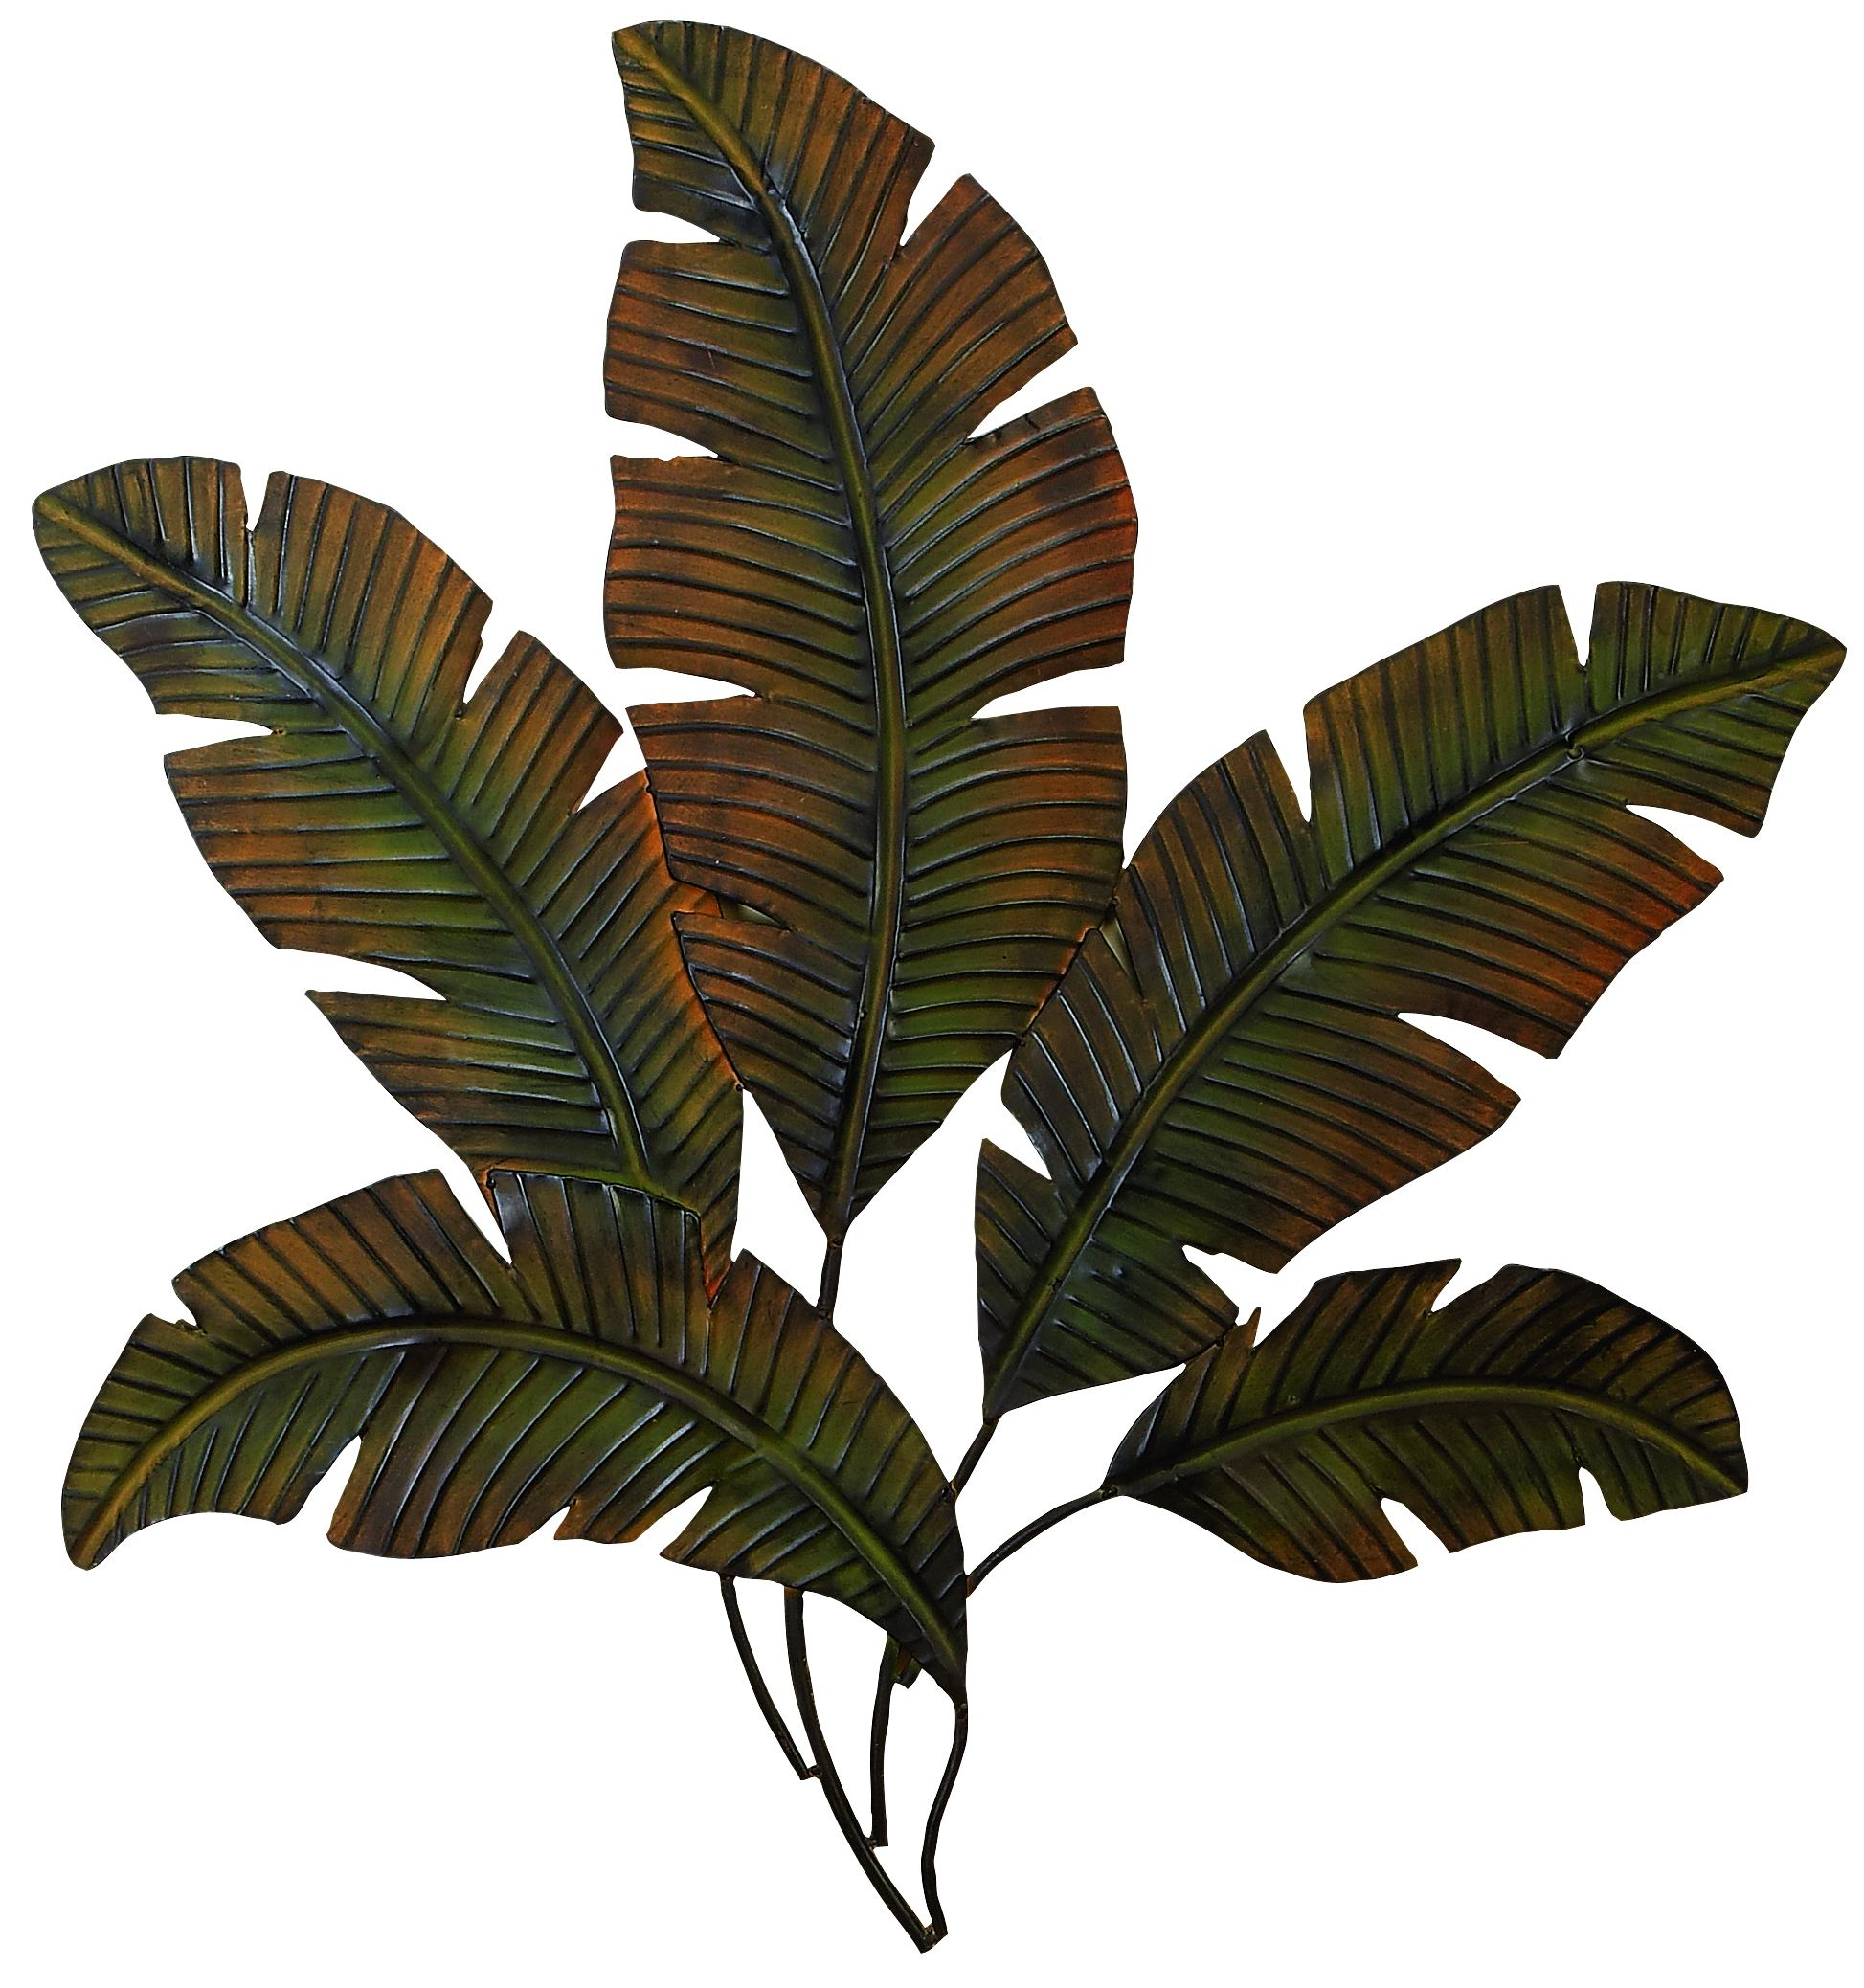 Decmode Nature-Inspired 35 Inch Metal Palm Leaves Wall Decor by DecMode